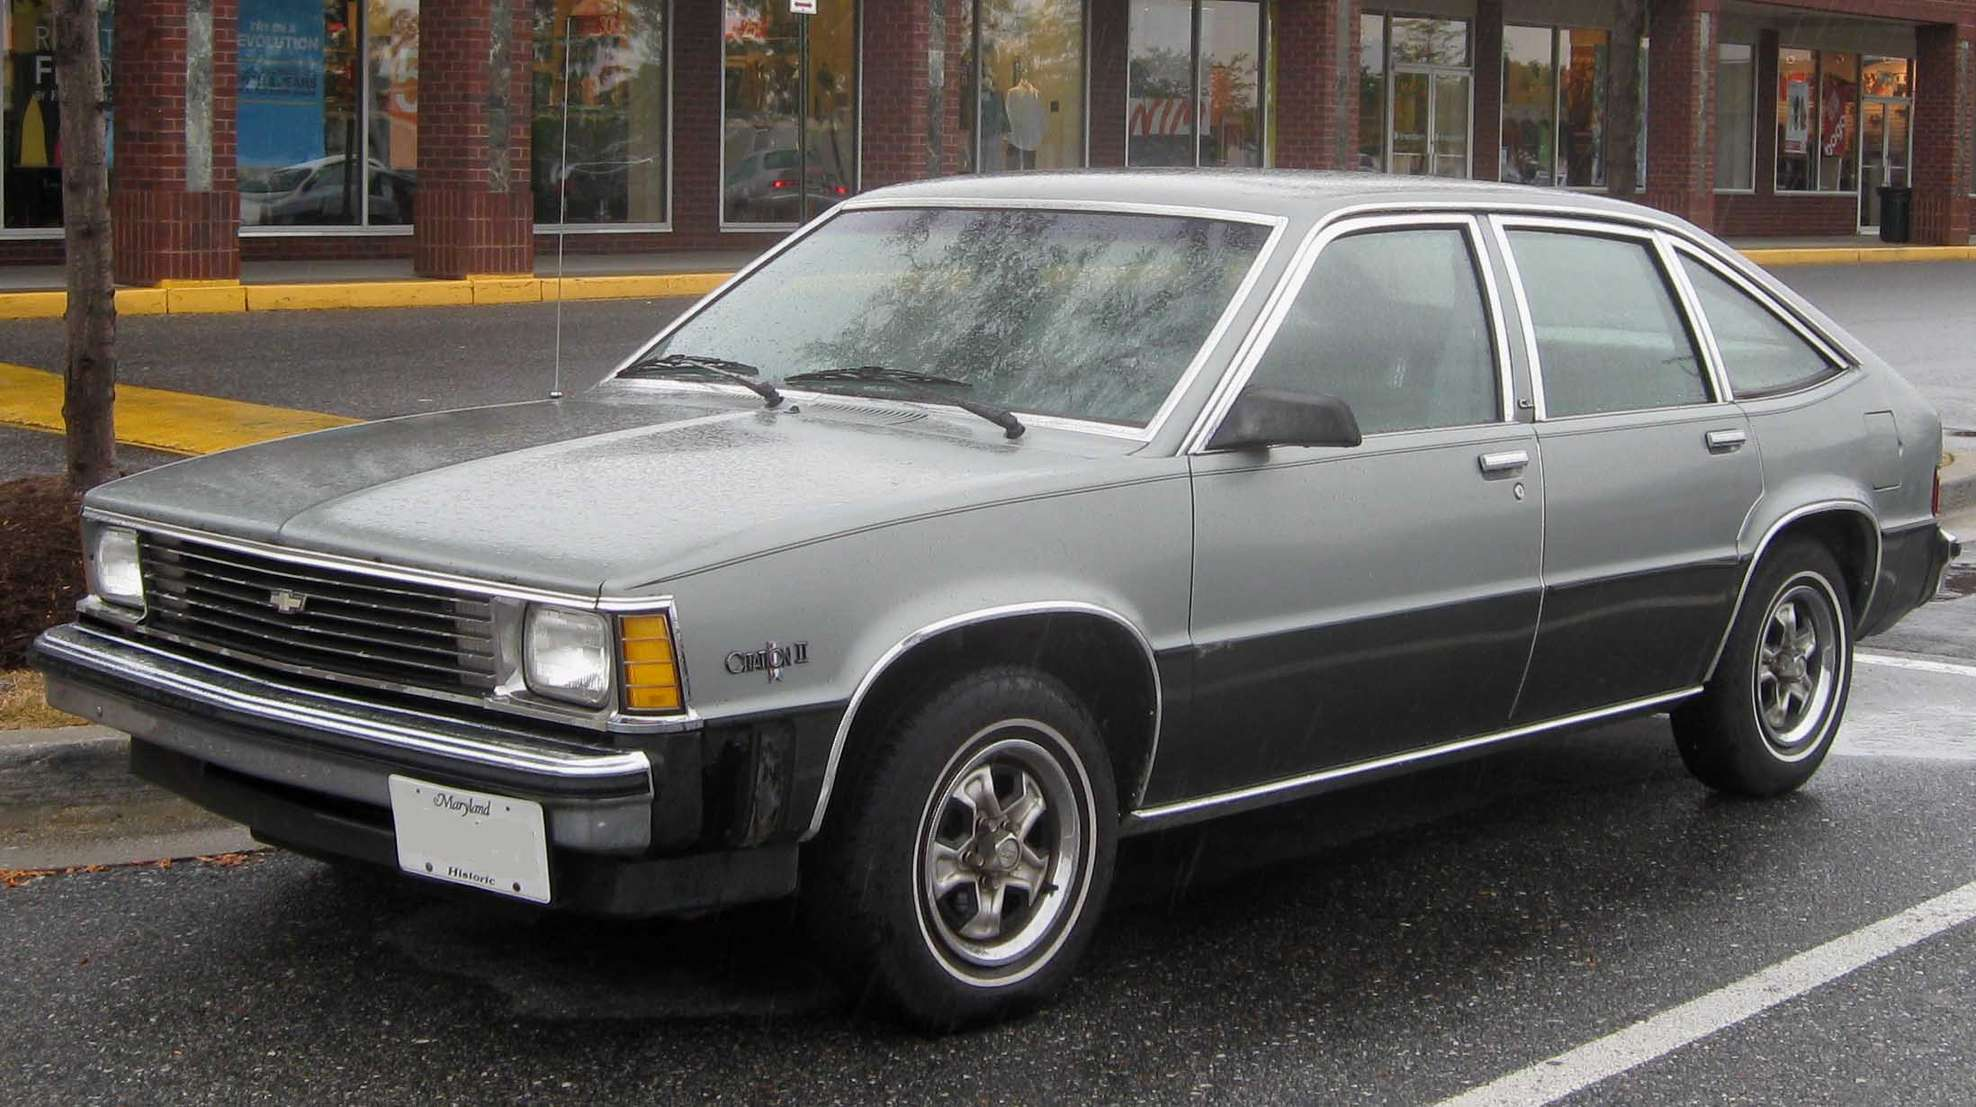 Chevrolet Citation #7198735